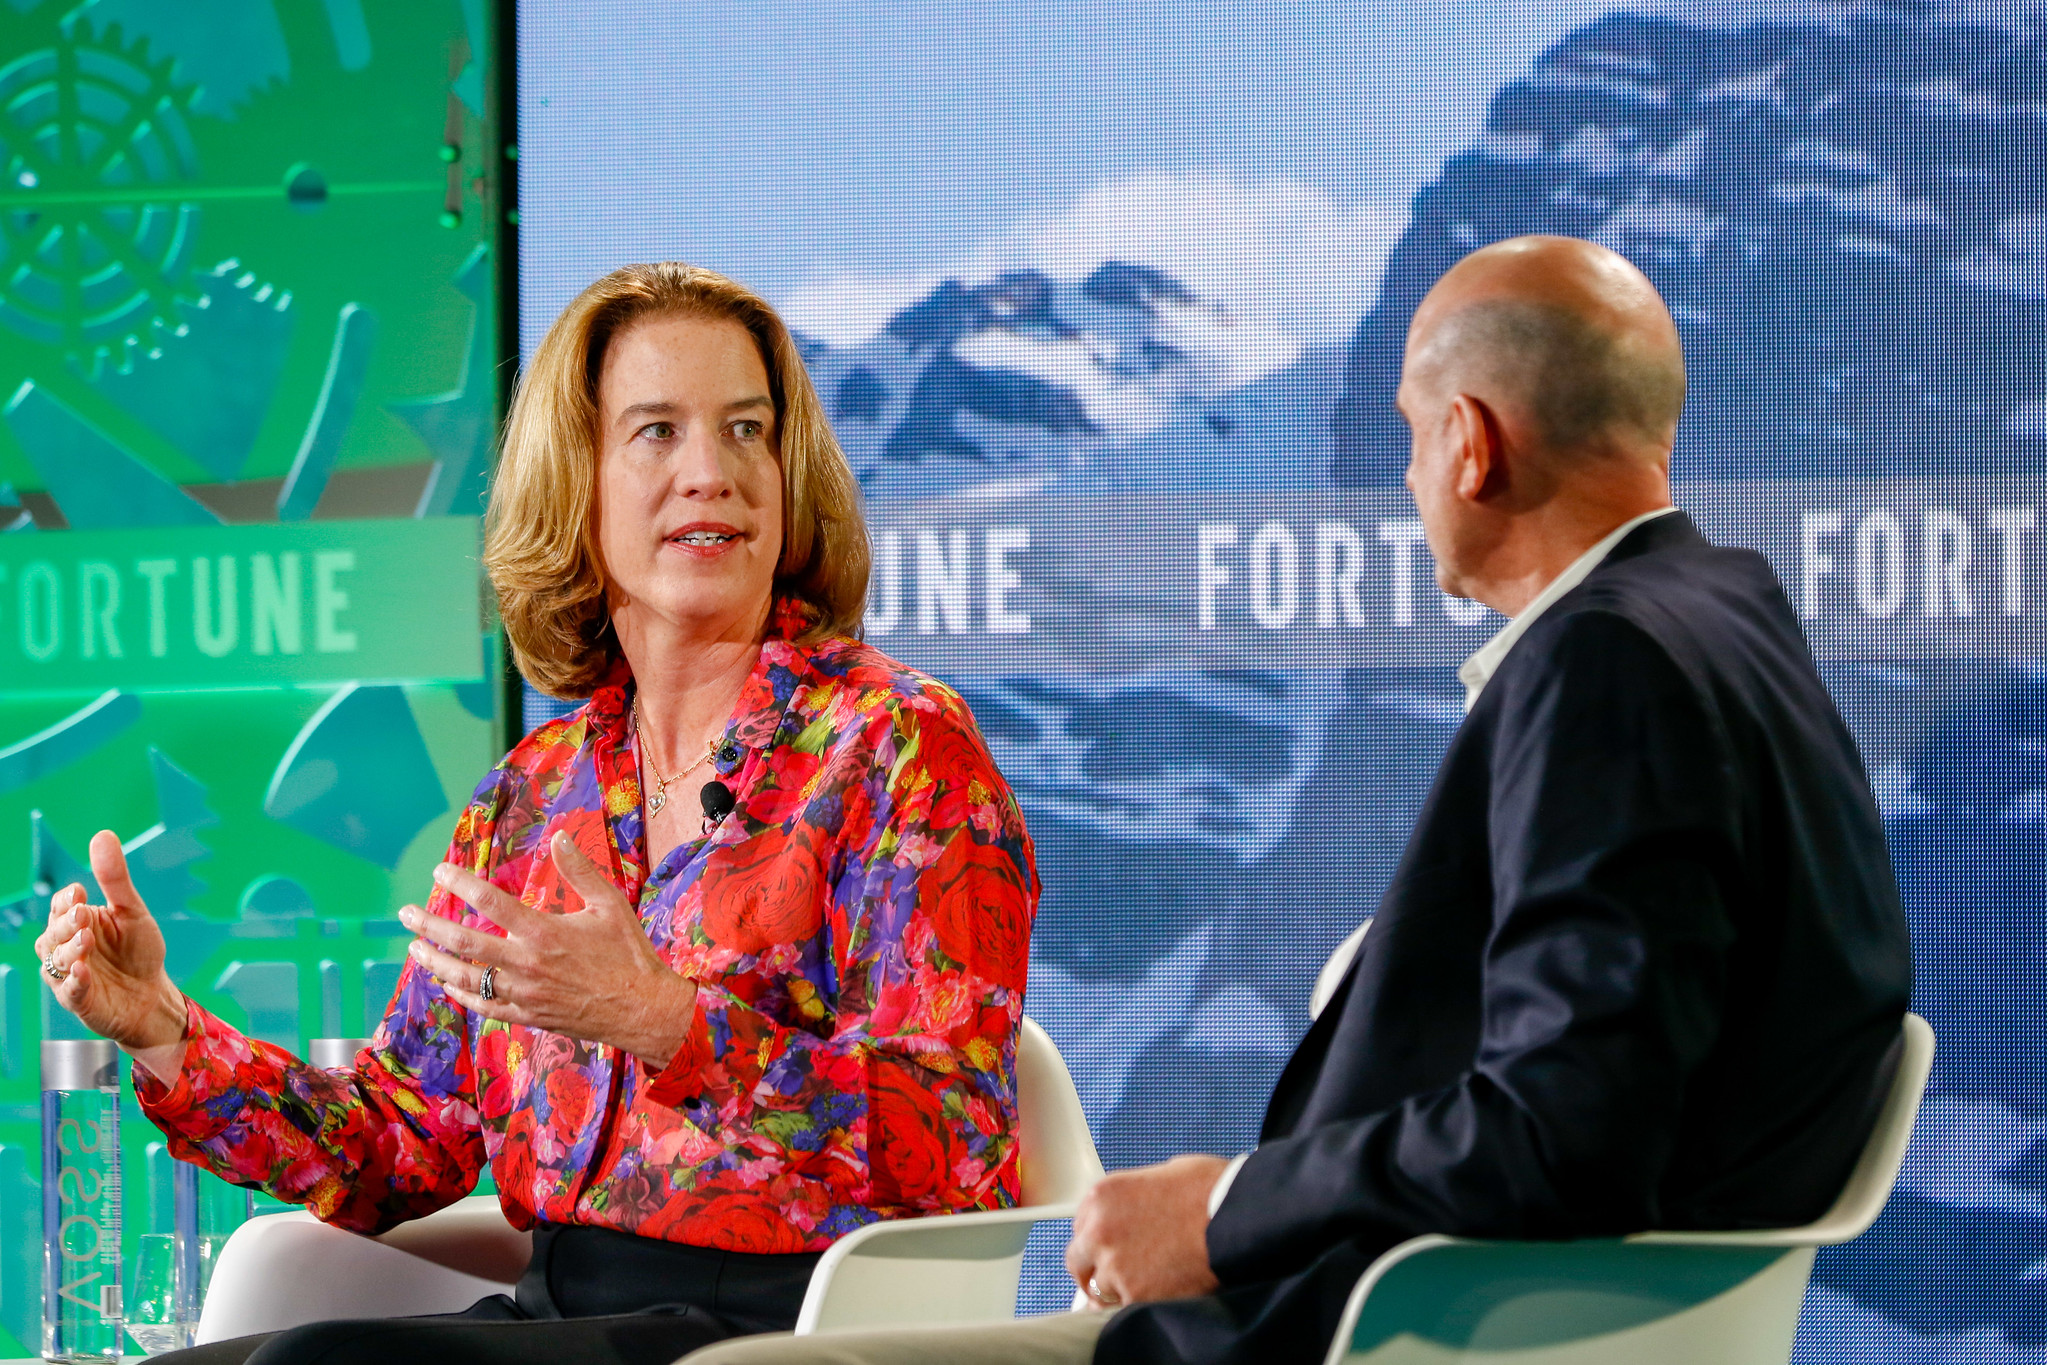 Margo Georgiadis, CEO of Ancestry.com speaks at Fortune's Brainstorm Tech conference